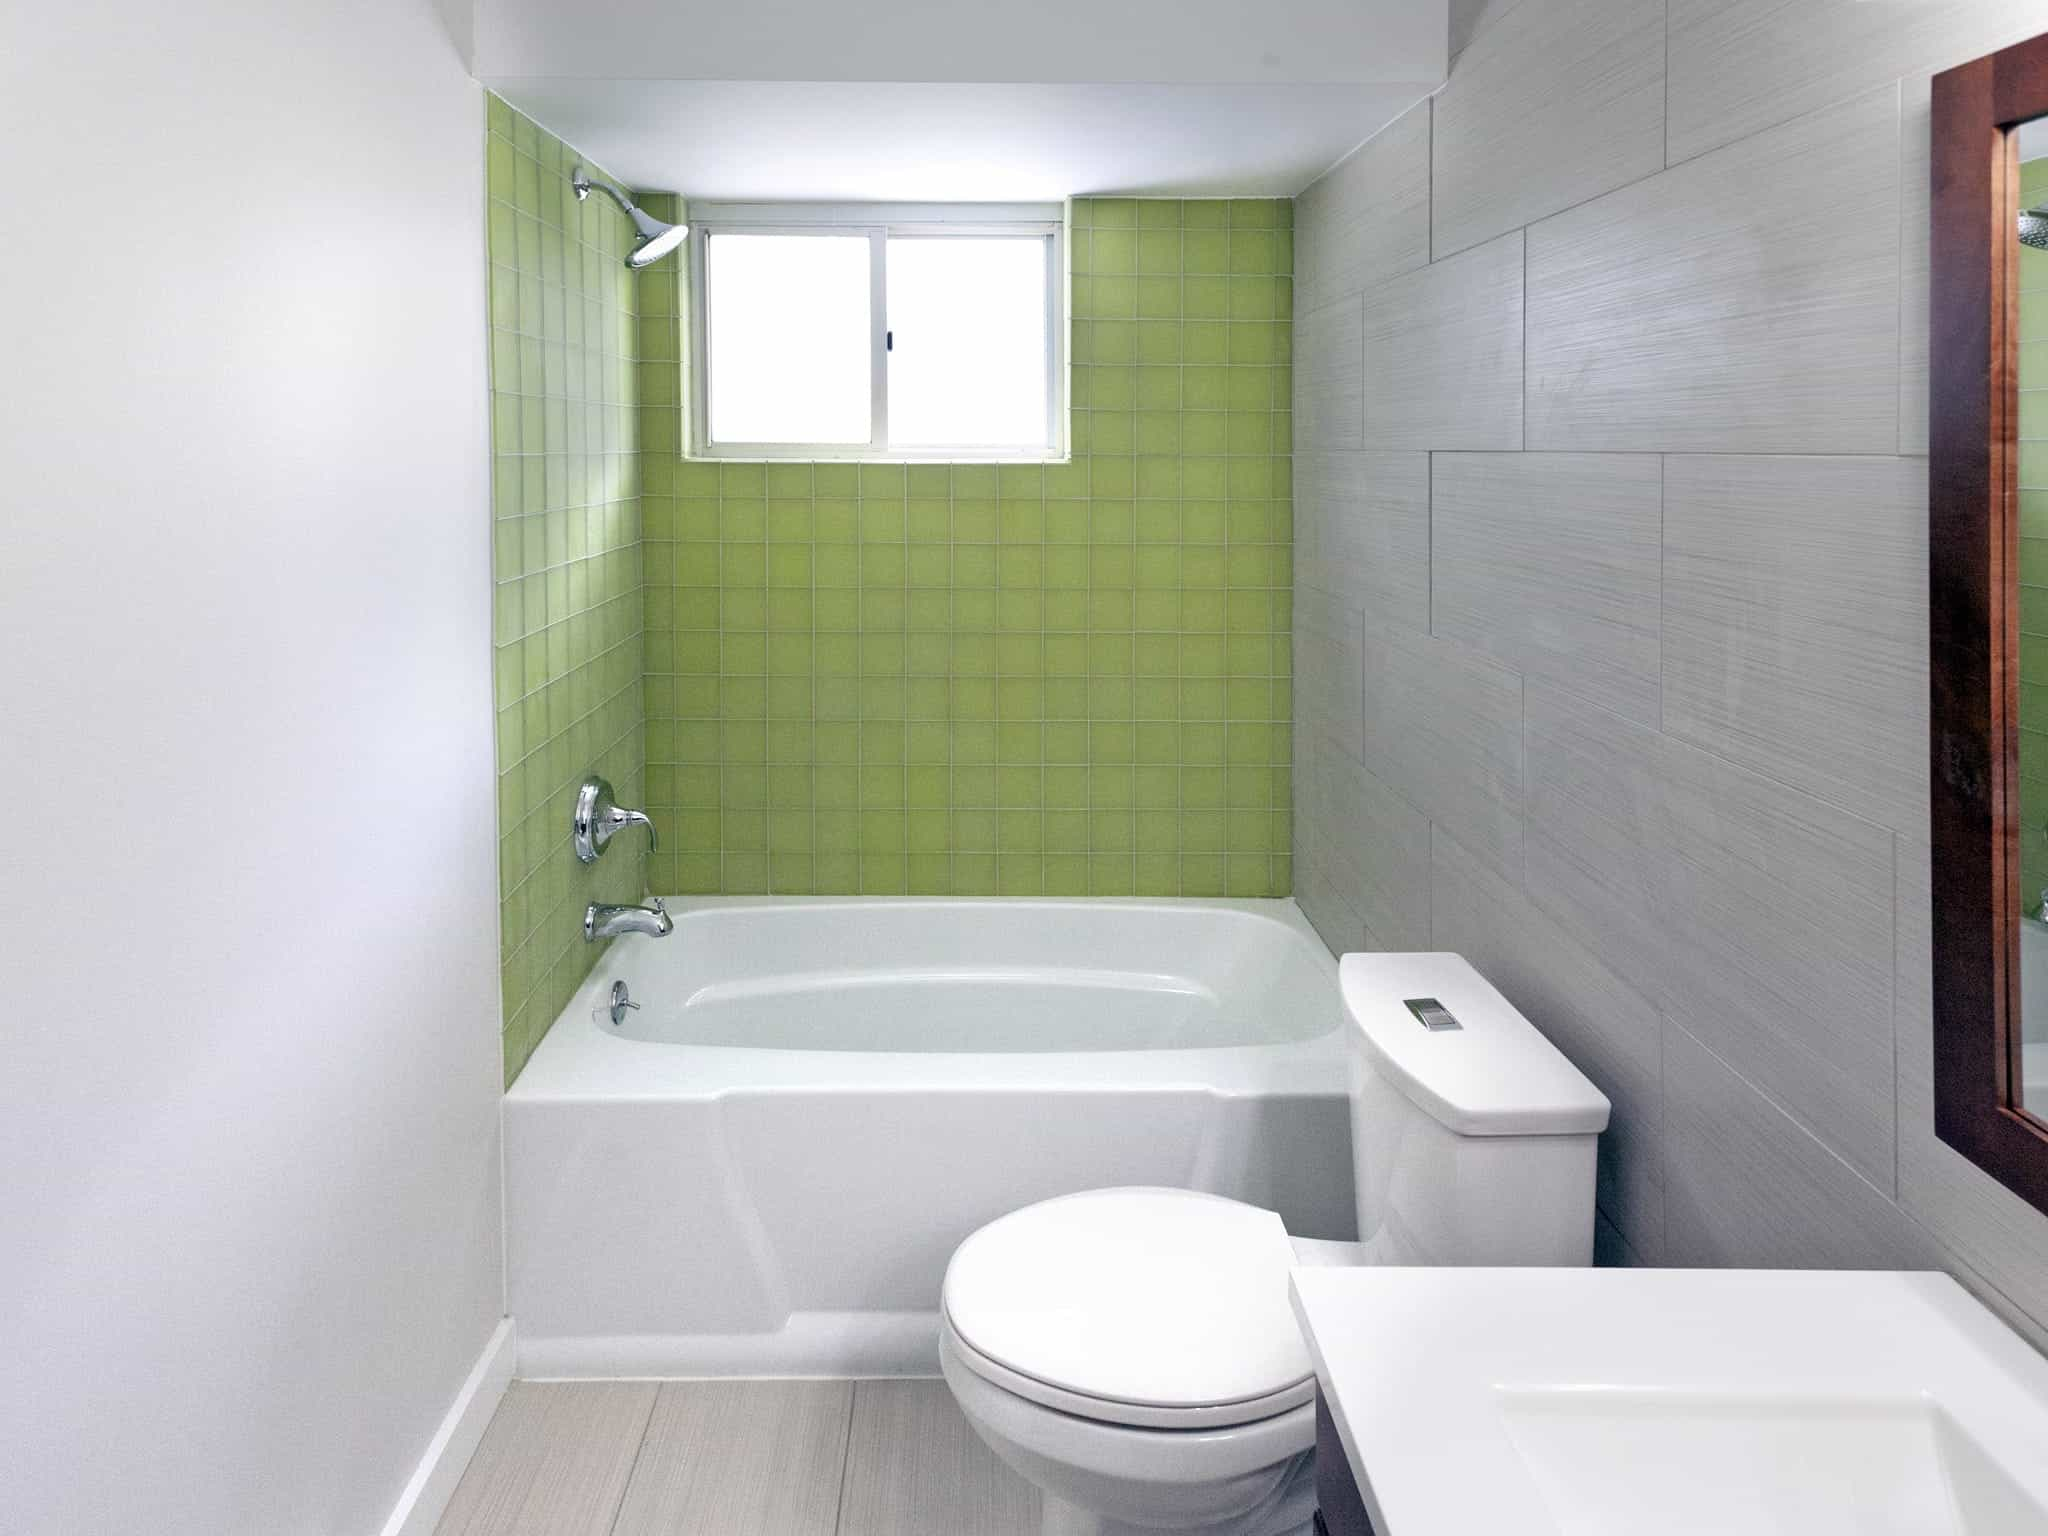 Green Tile Shower In Neutral Bathroom Interior (Image 9 of 12)